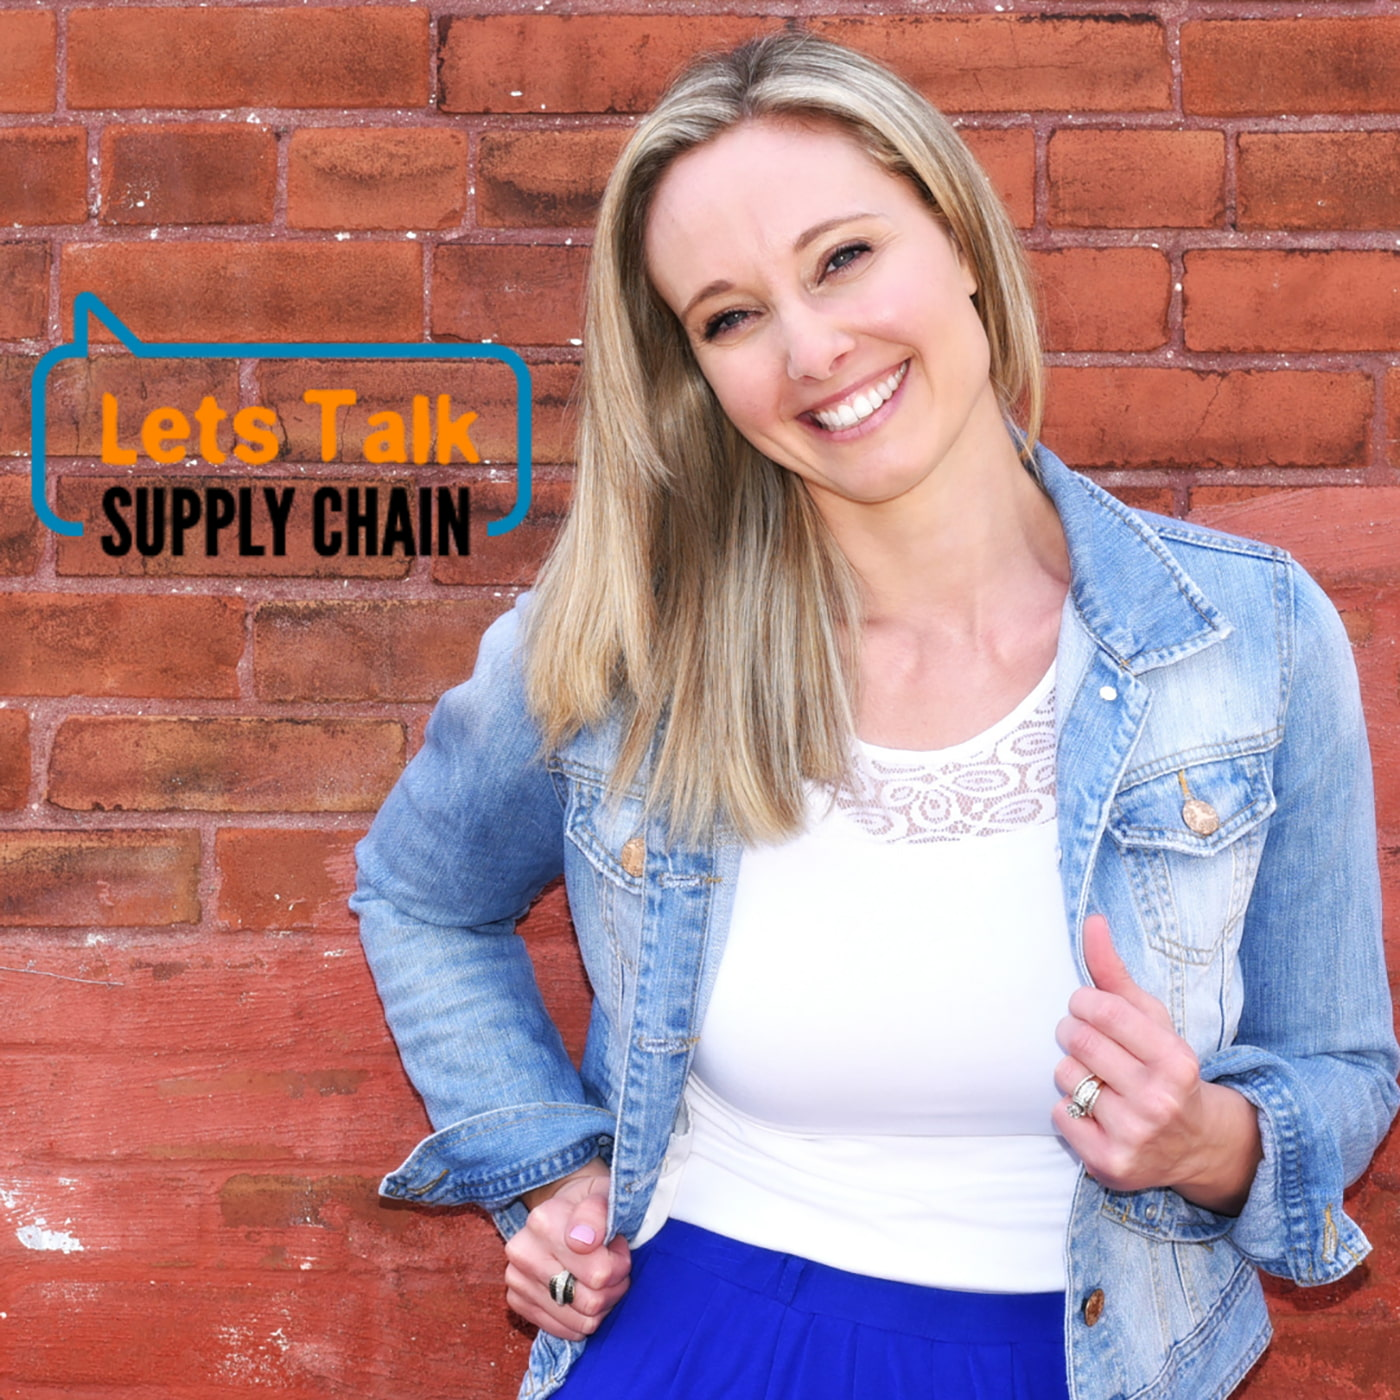 Let's Talk Supply Chain show art